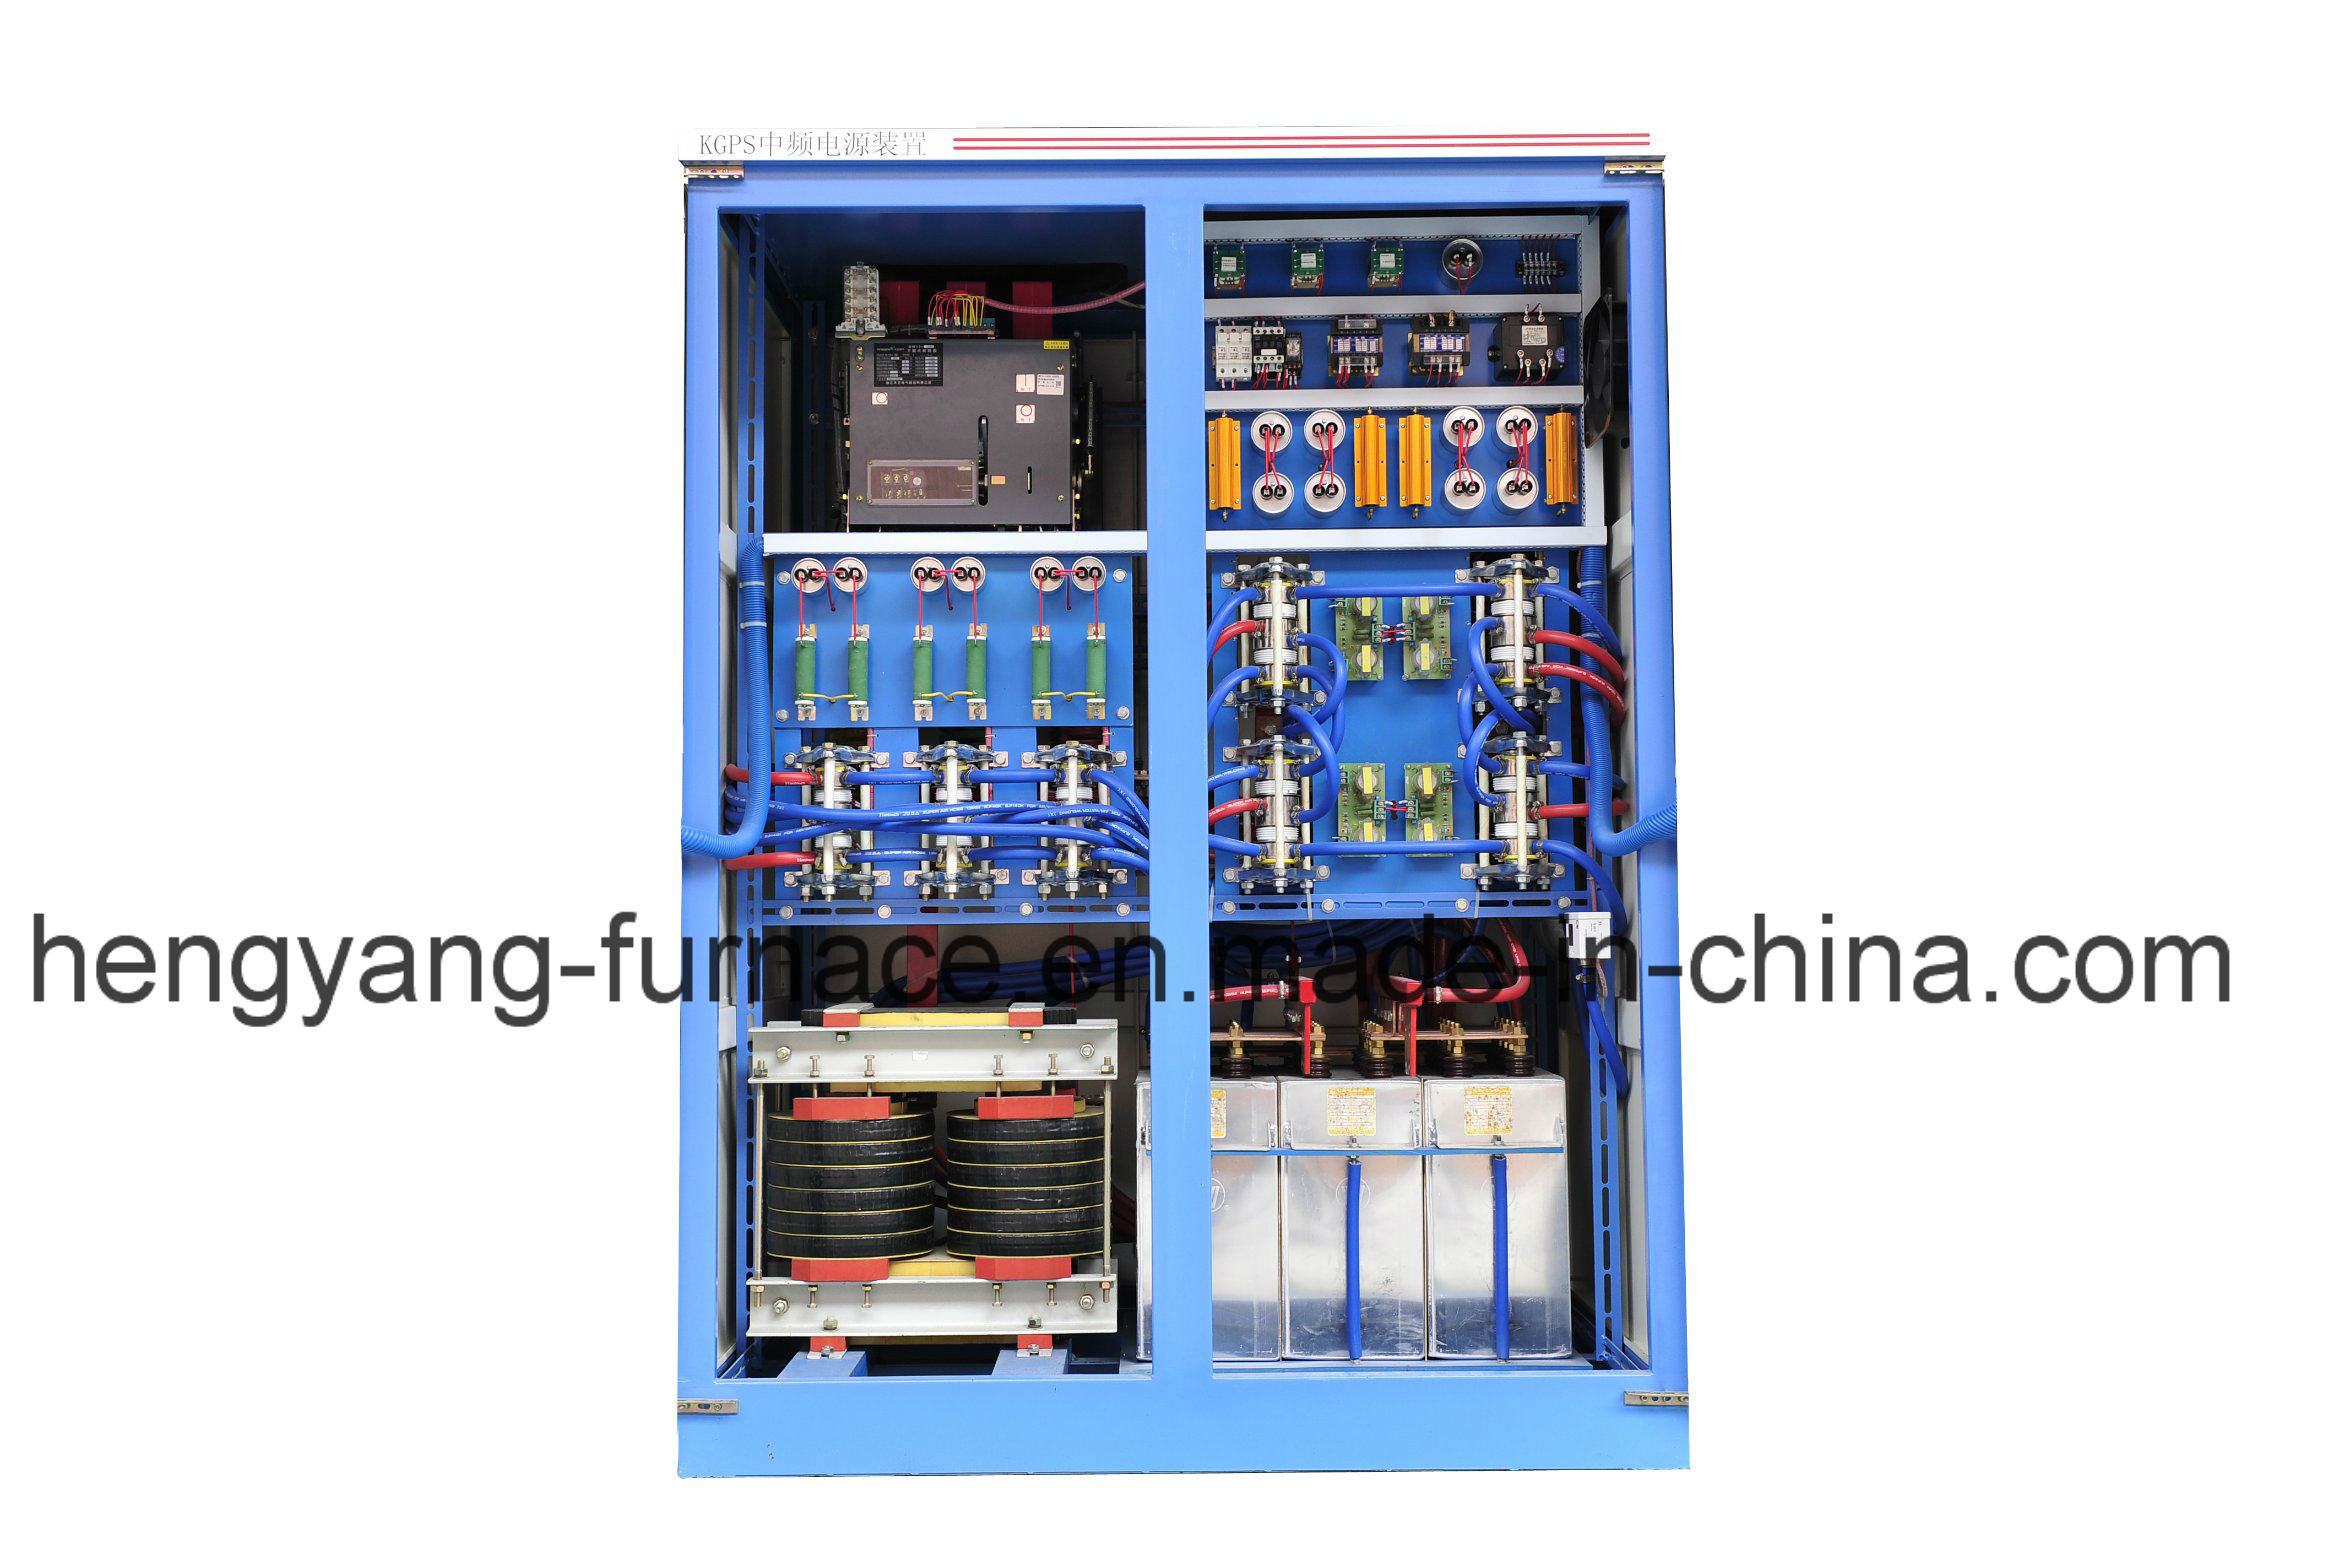 2t Intermediate Frequency Electric Induction Melting Furnace for Steel